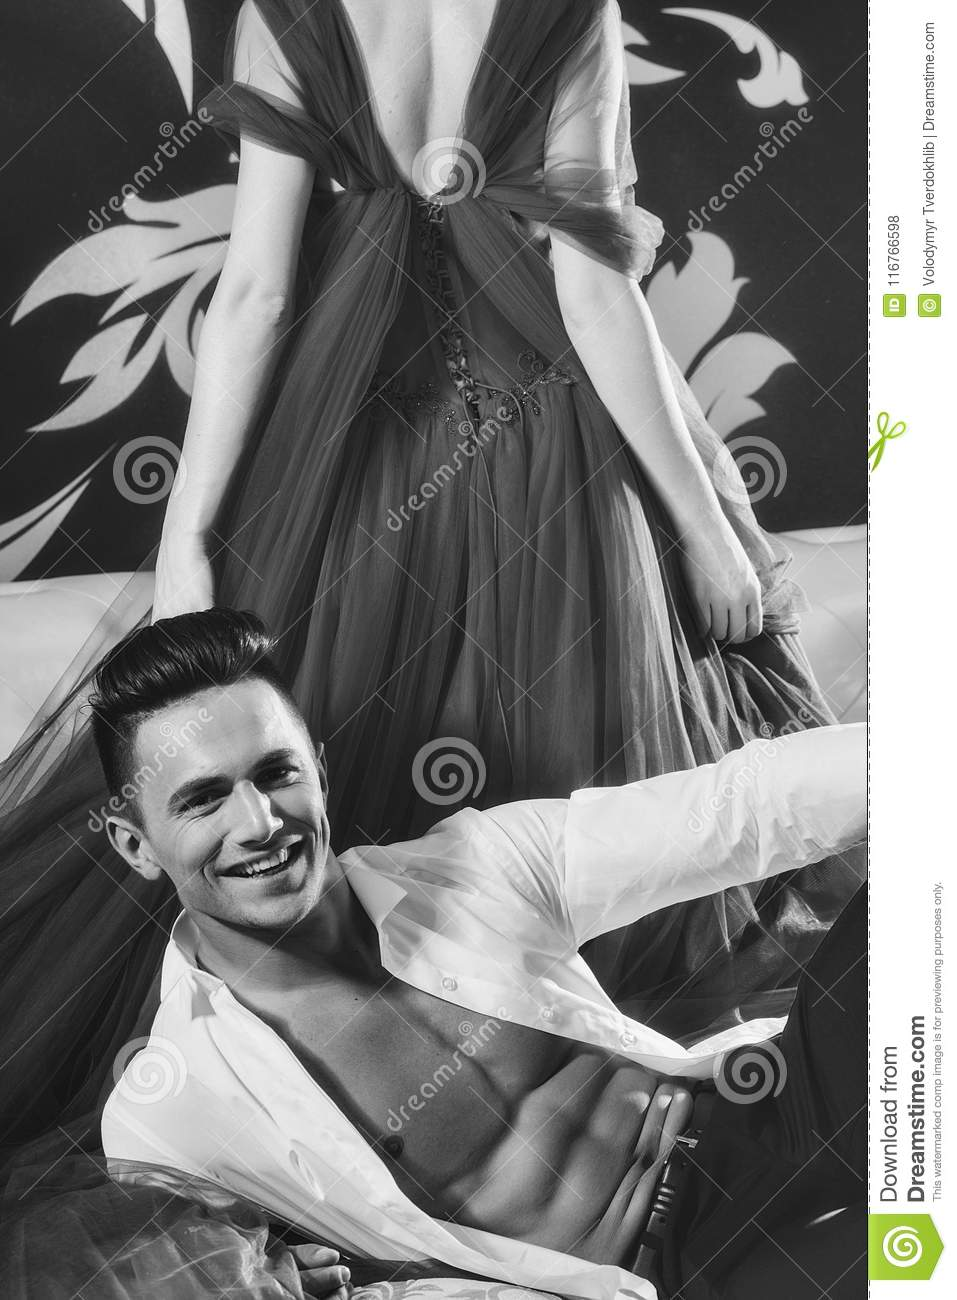 7ab82b70a5585 Couple of handsome man in open shirt with muscular bare torso with pretty  woman in red elegant evening dress with long skirt